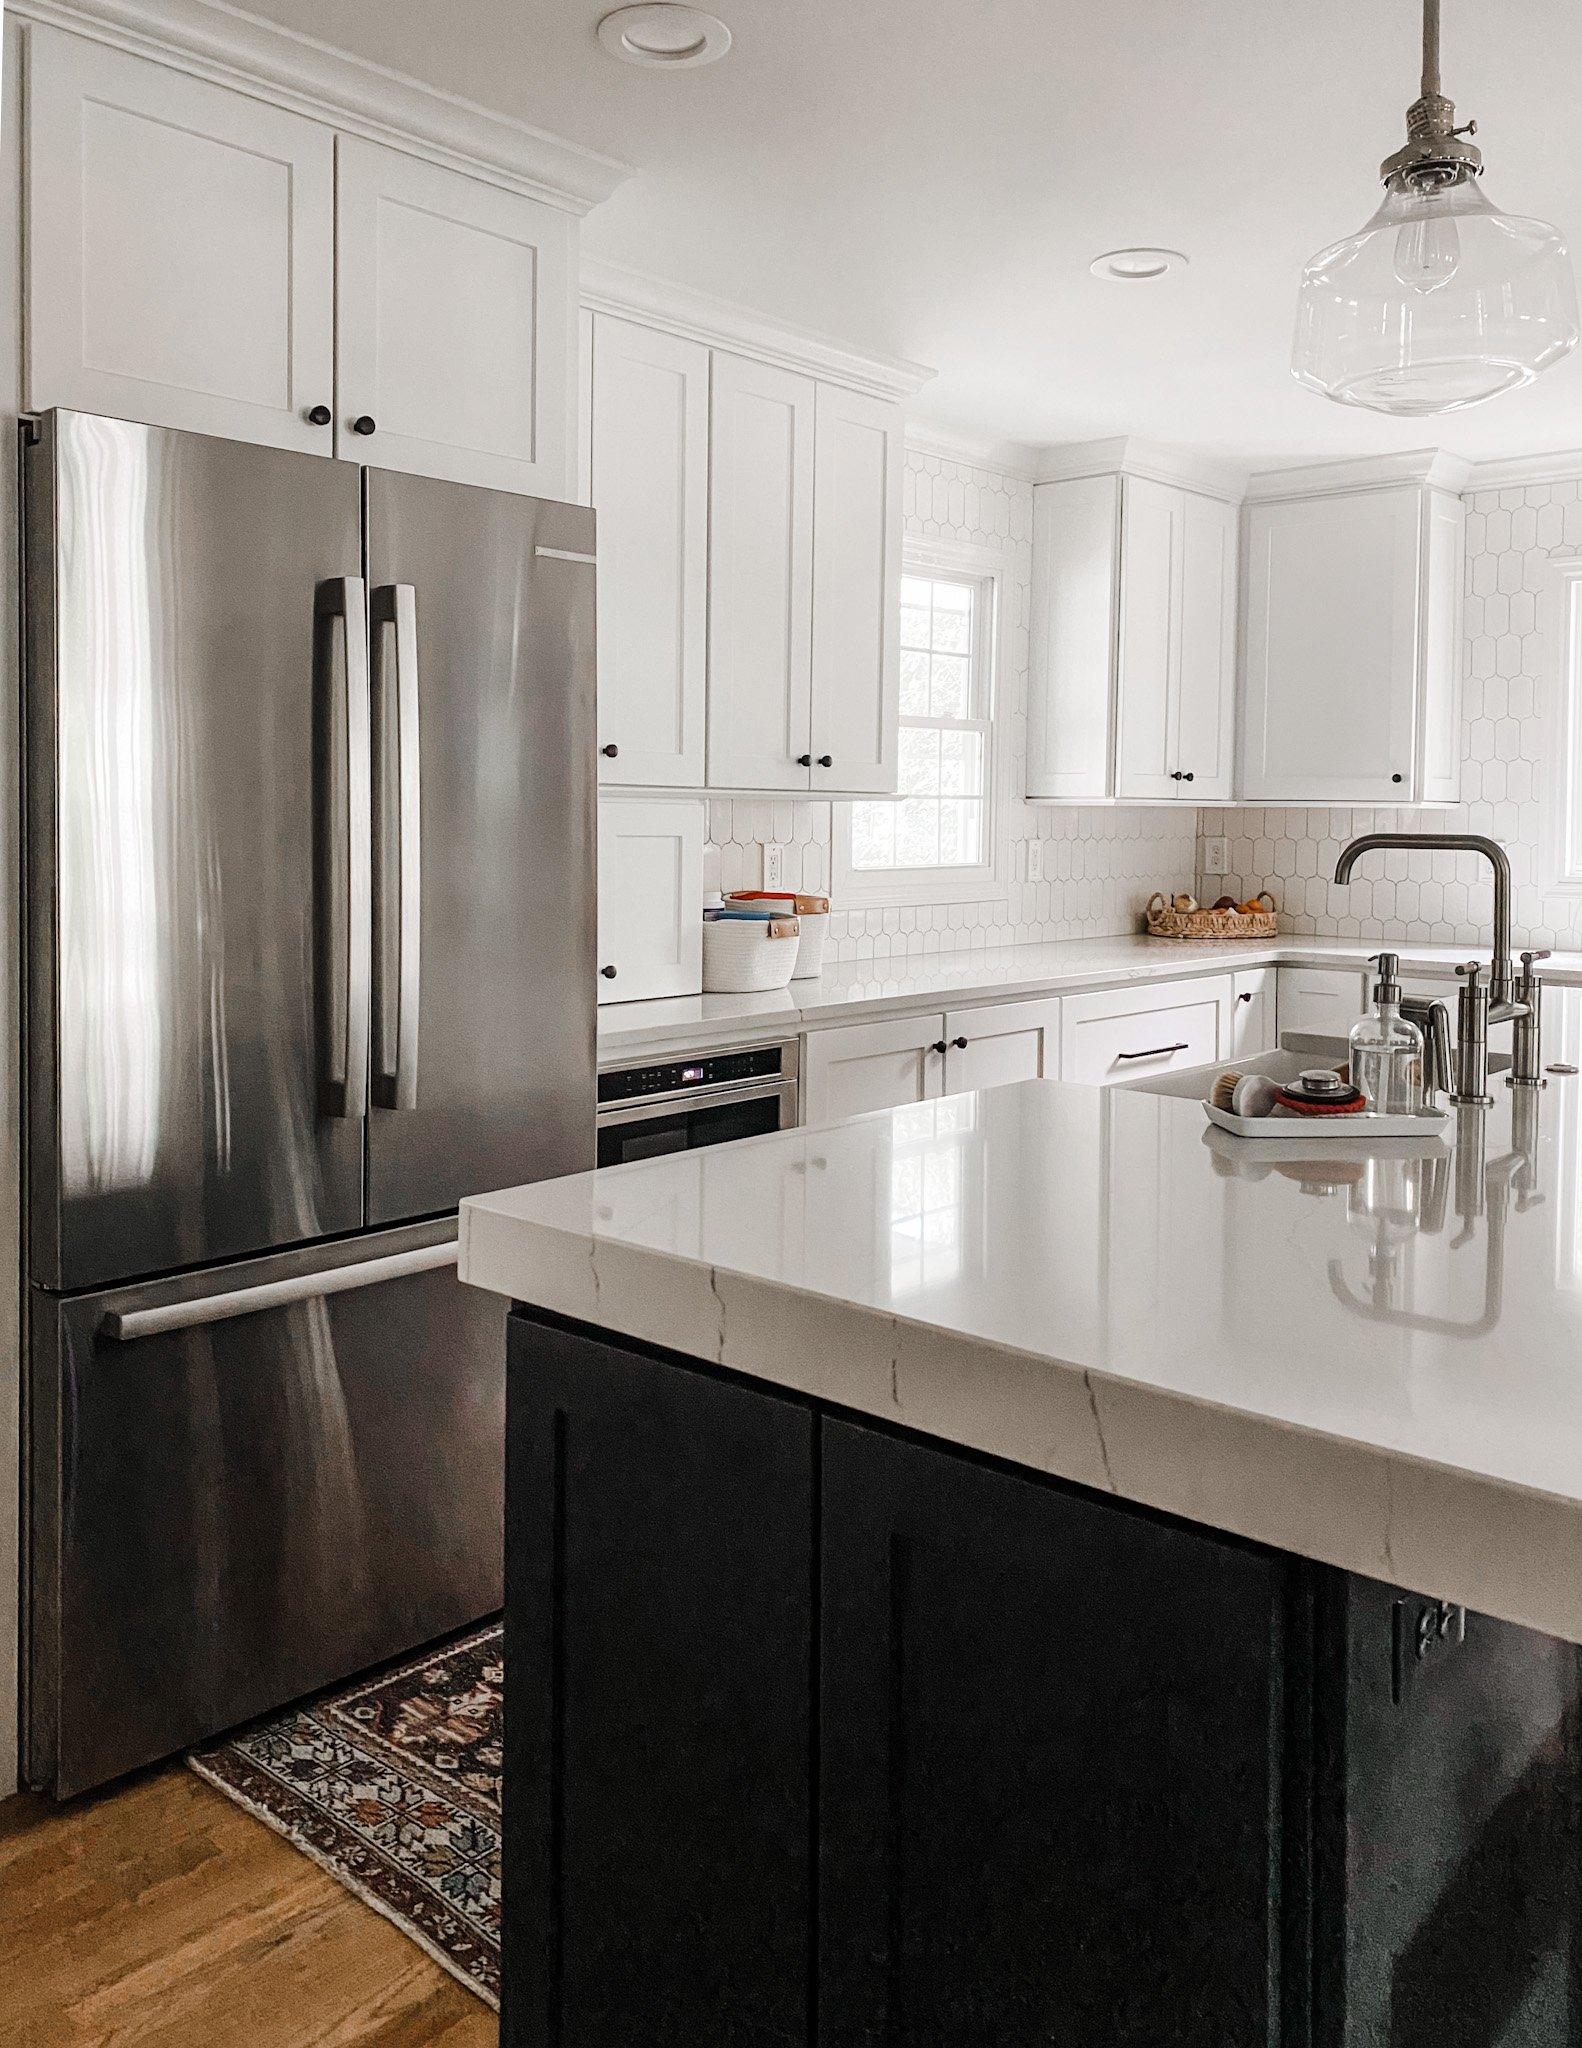 crisp white cabinets and a dark navy island in the kitchen